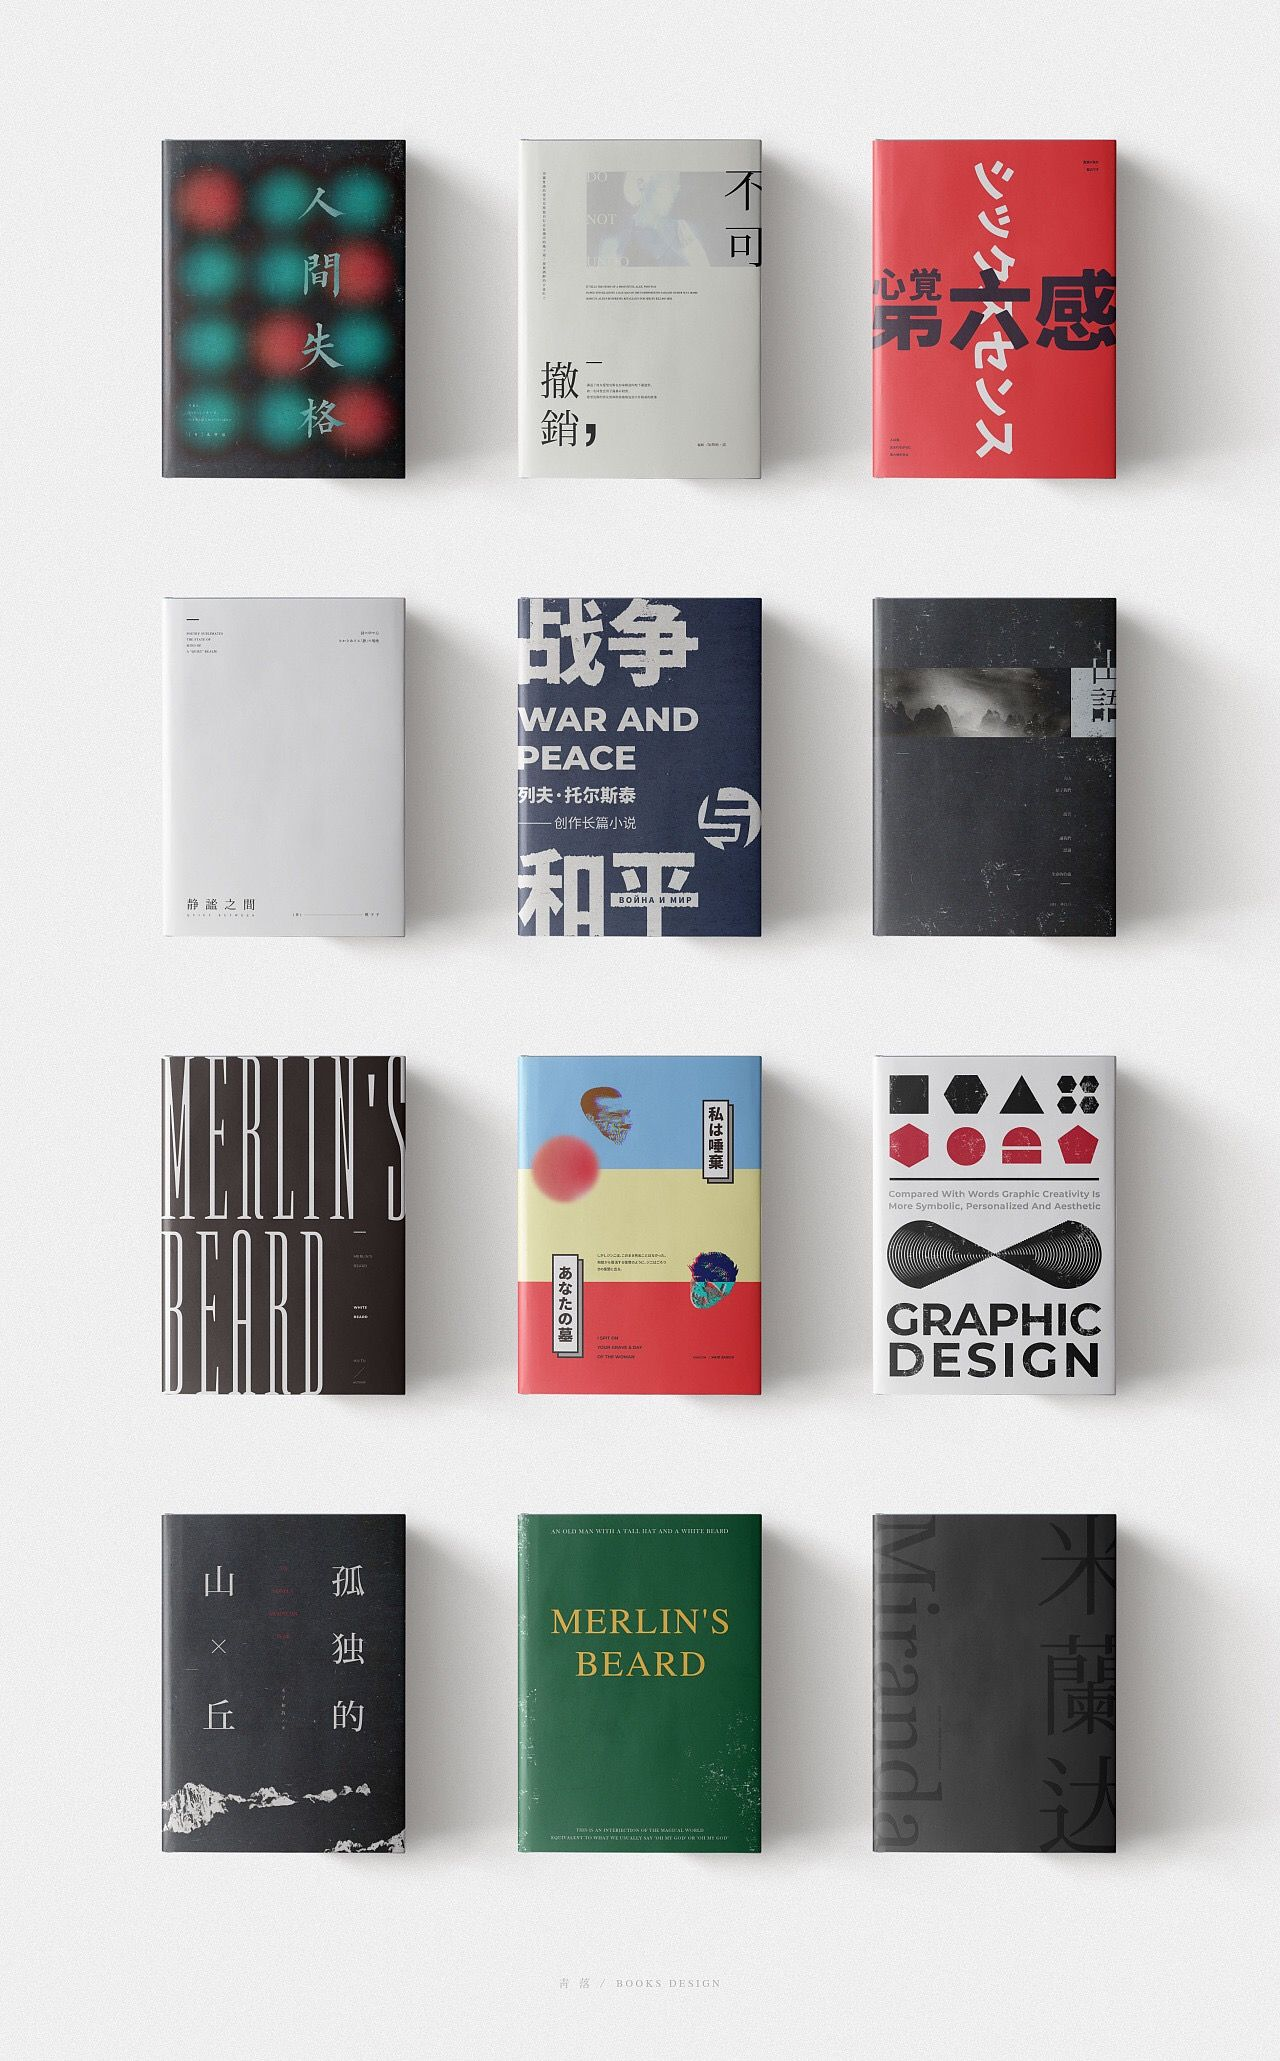 Pin By Mory Swan On Packaging Box Pacel Book Cover Design Inspiration Book Design Book Design Inspiration